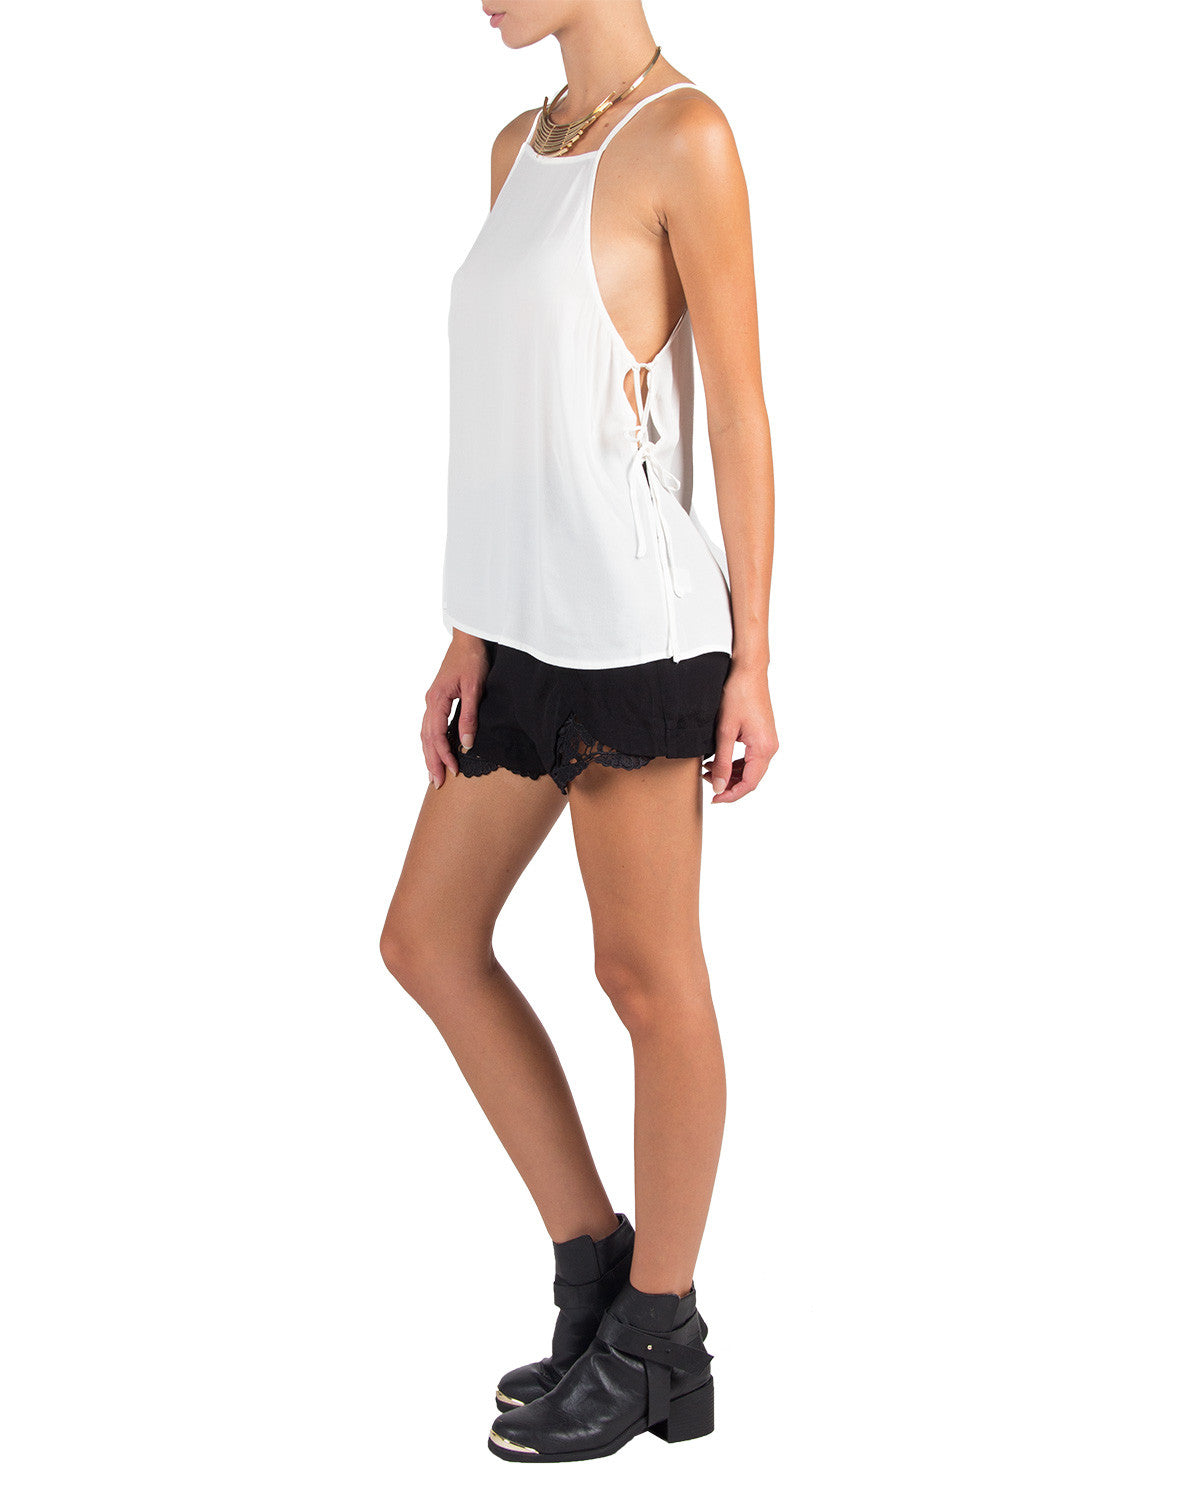 Criss Cross Side Tie Top - White - 2020AVE